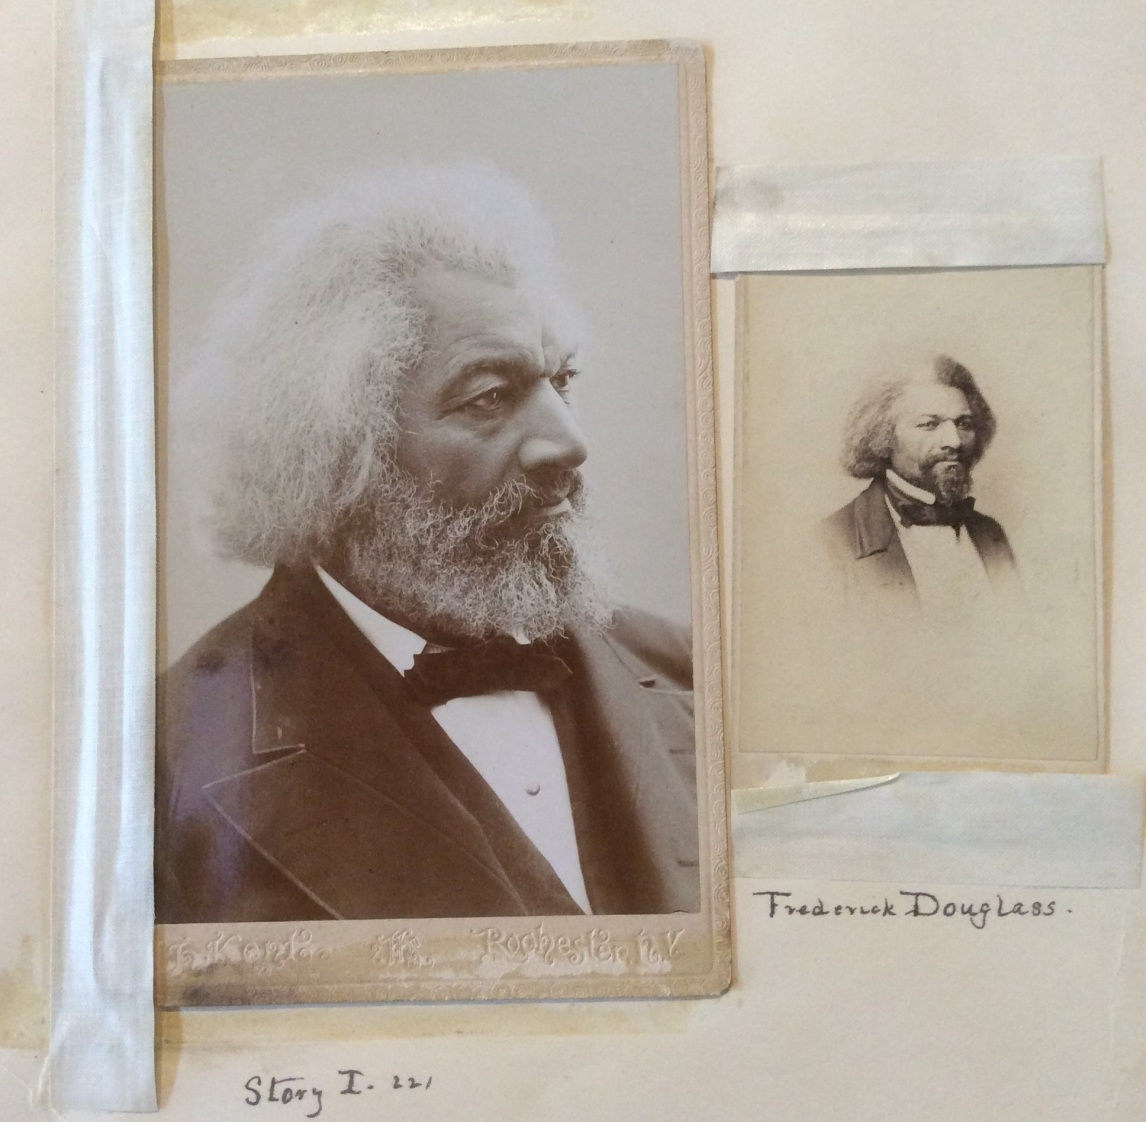 Two portraits of Frederick Douglass from the Hutchinson Family scrapbook